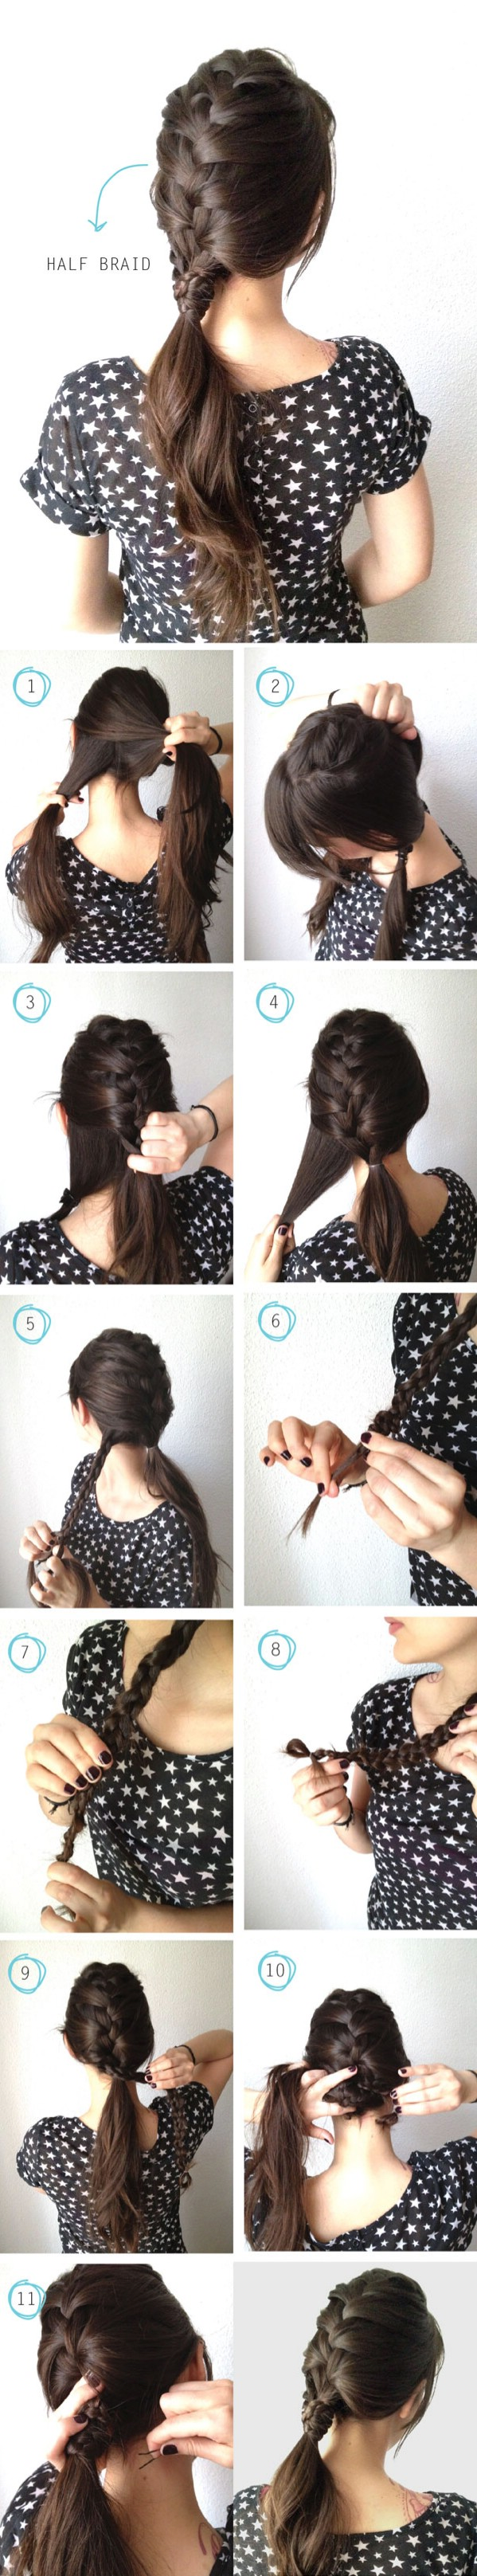 French half braid with braided wrap